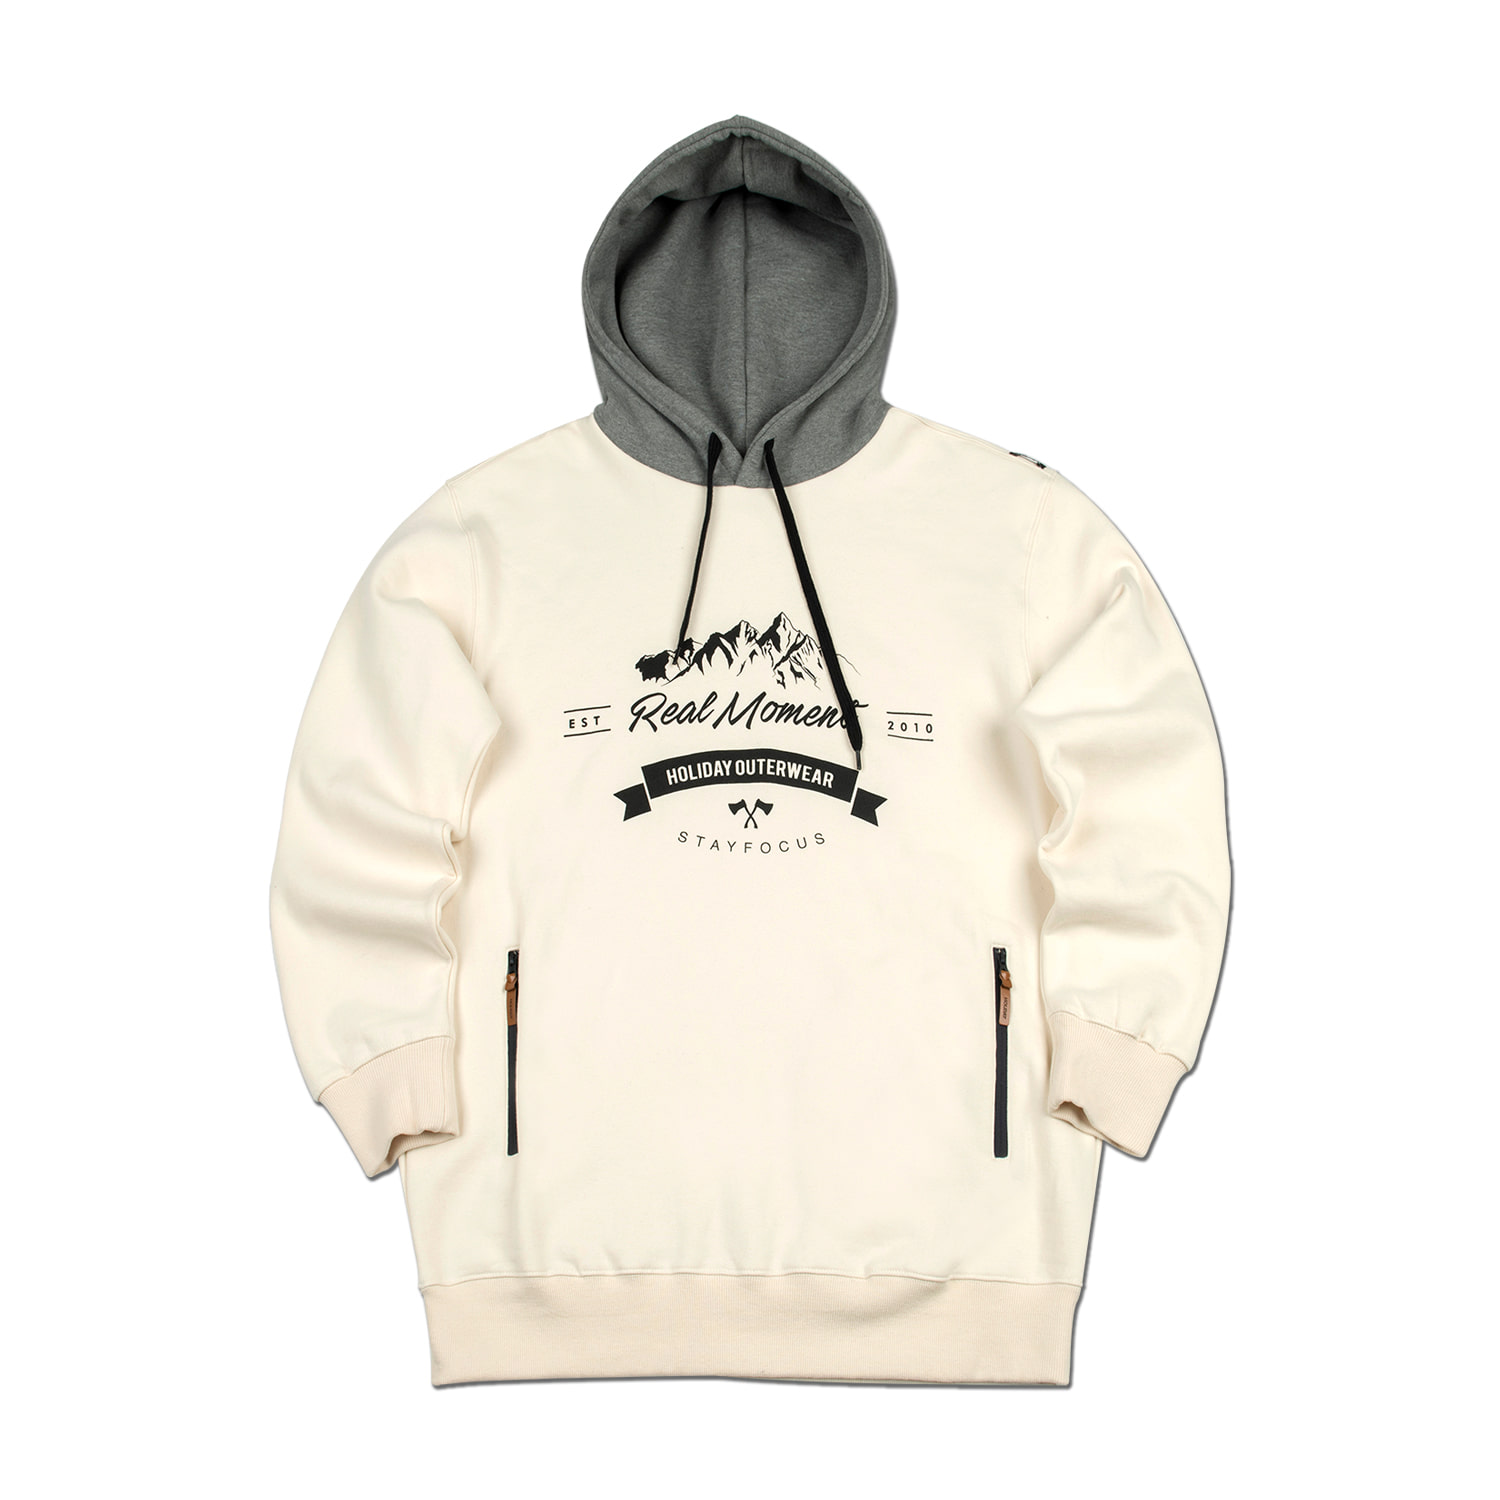 STAMP hoodie - creamHOLIDAY OUTERWEAR